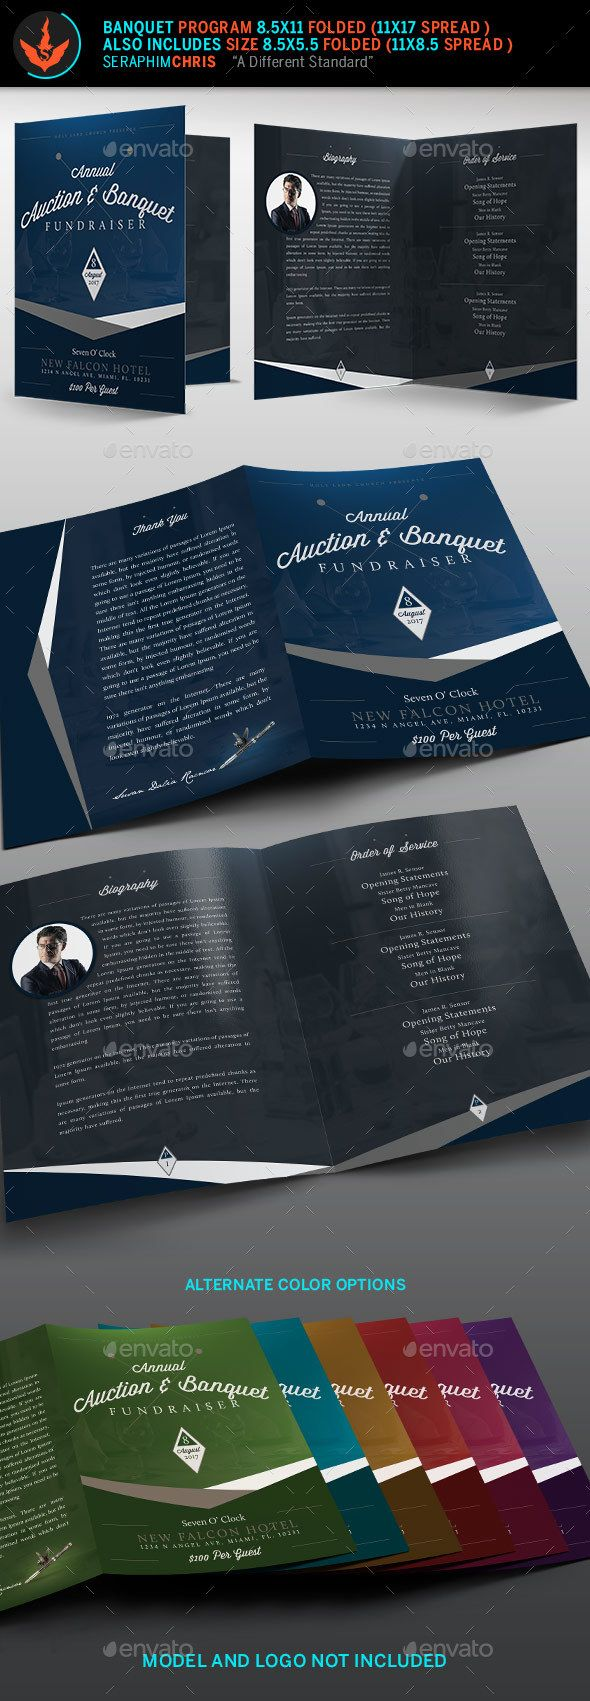 auction plus banquet church program template only available here httpgraphicriver